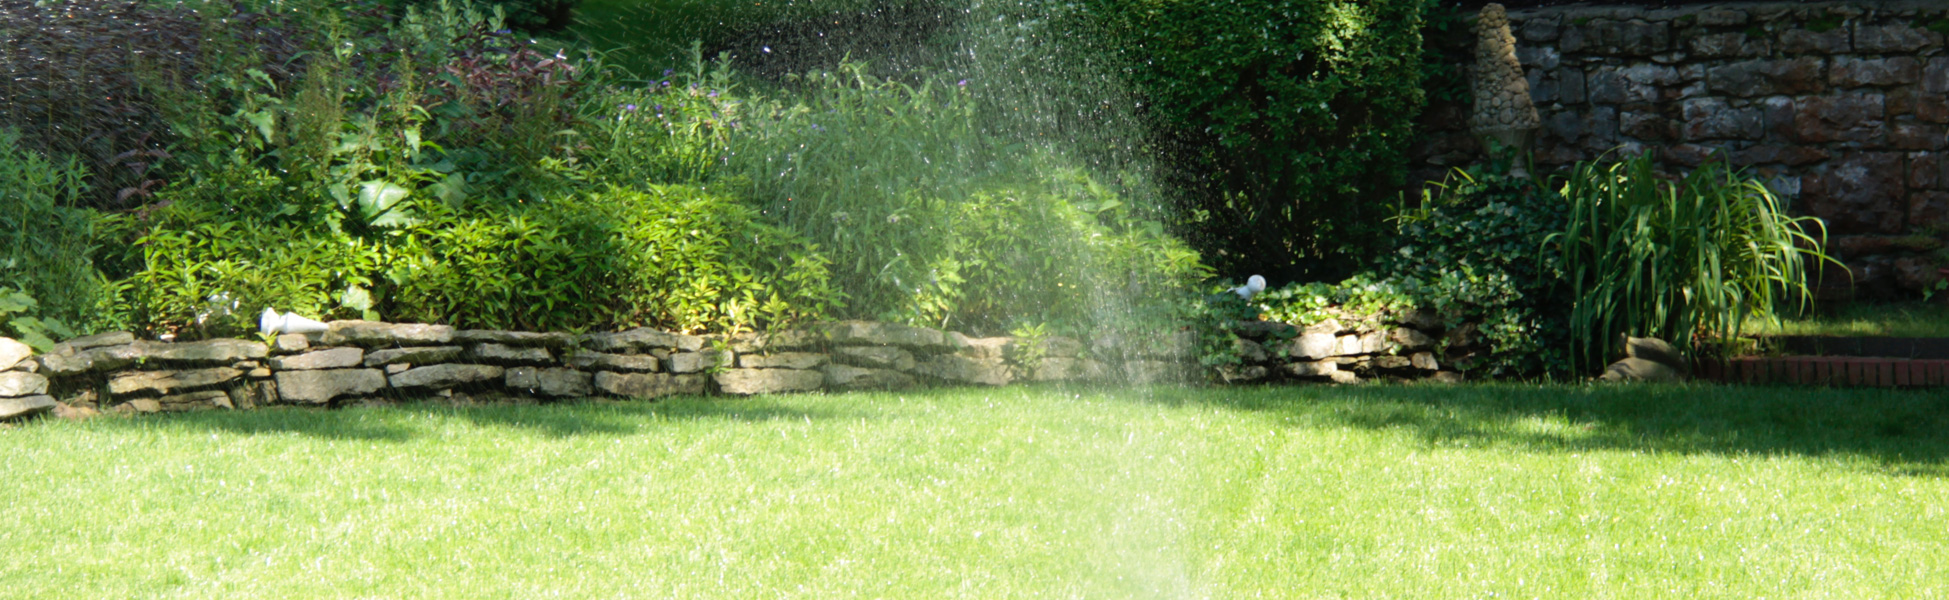 Book a Sprinkler System Installation in the Off-Season and Save